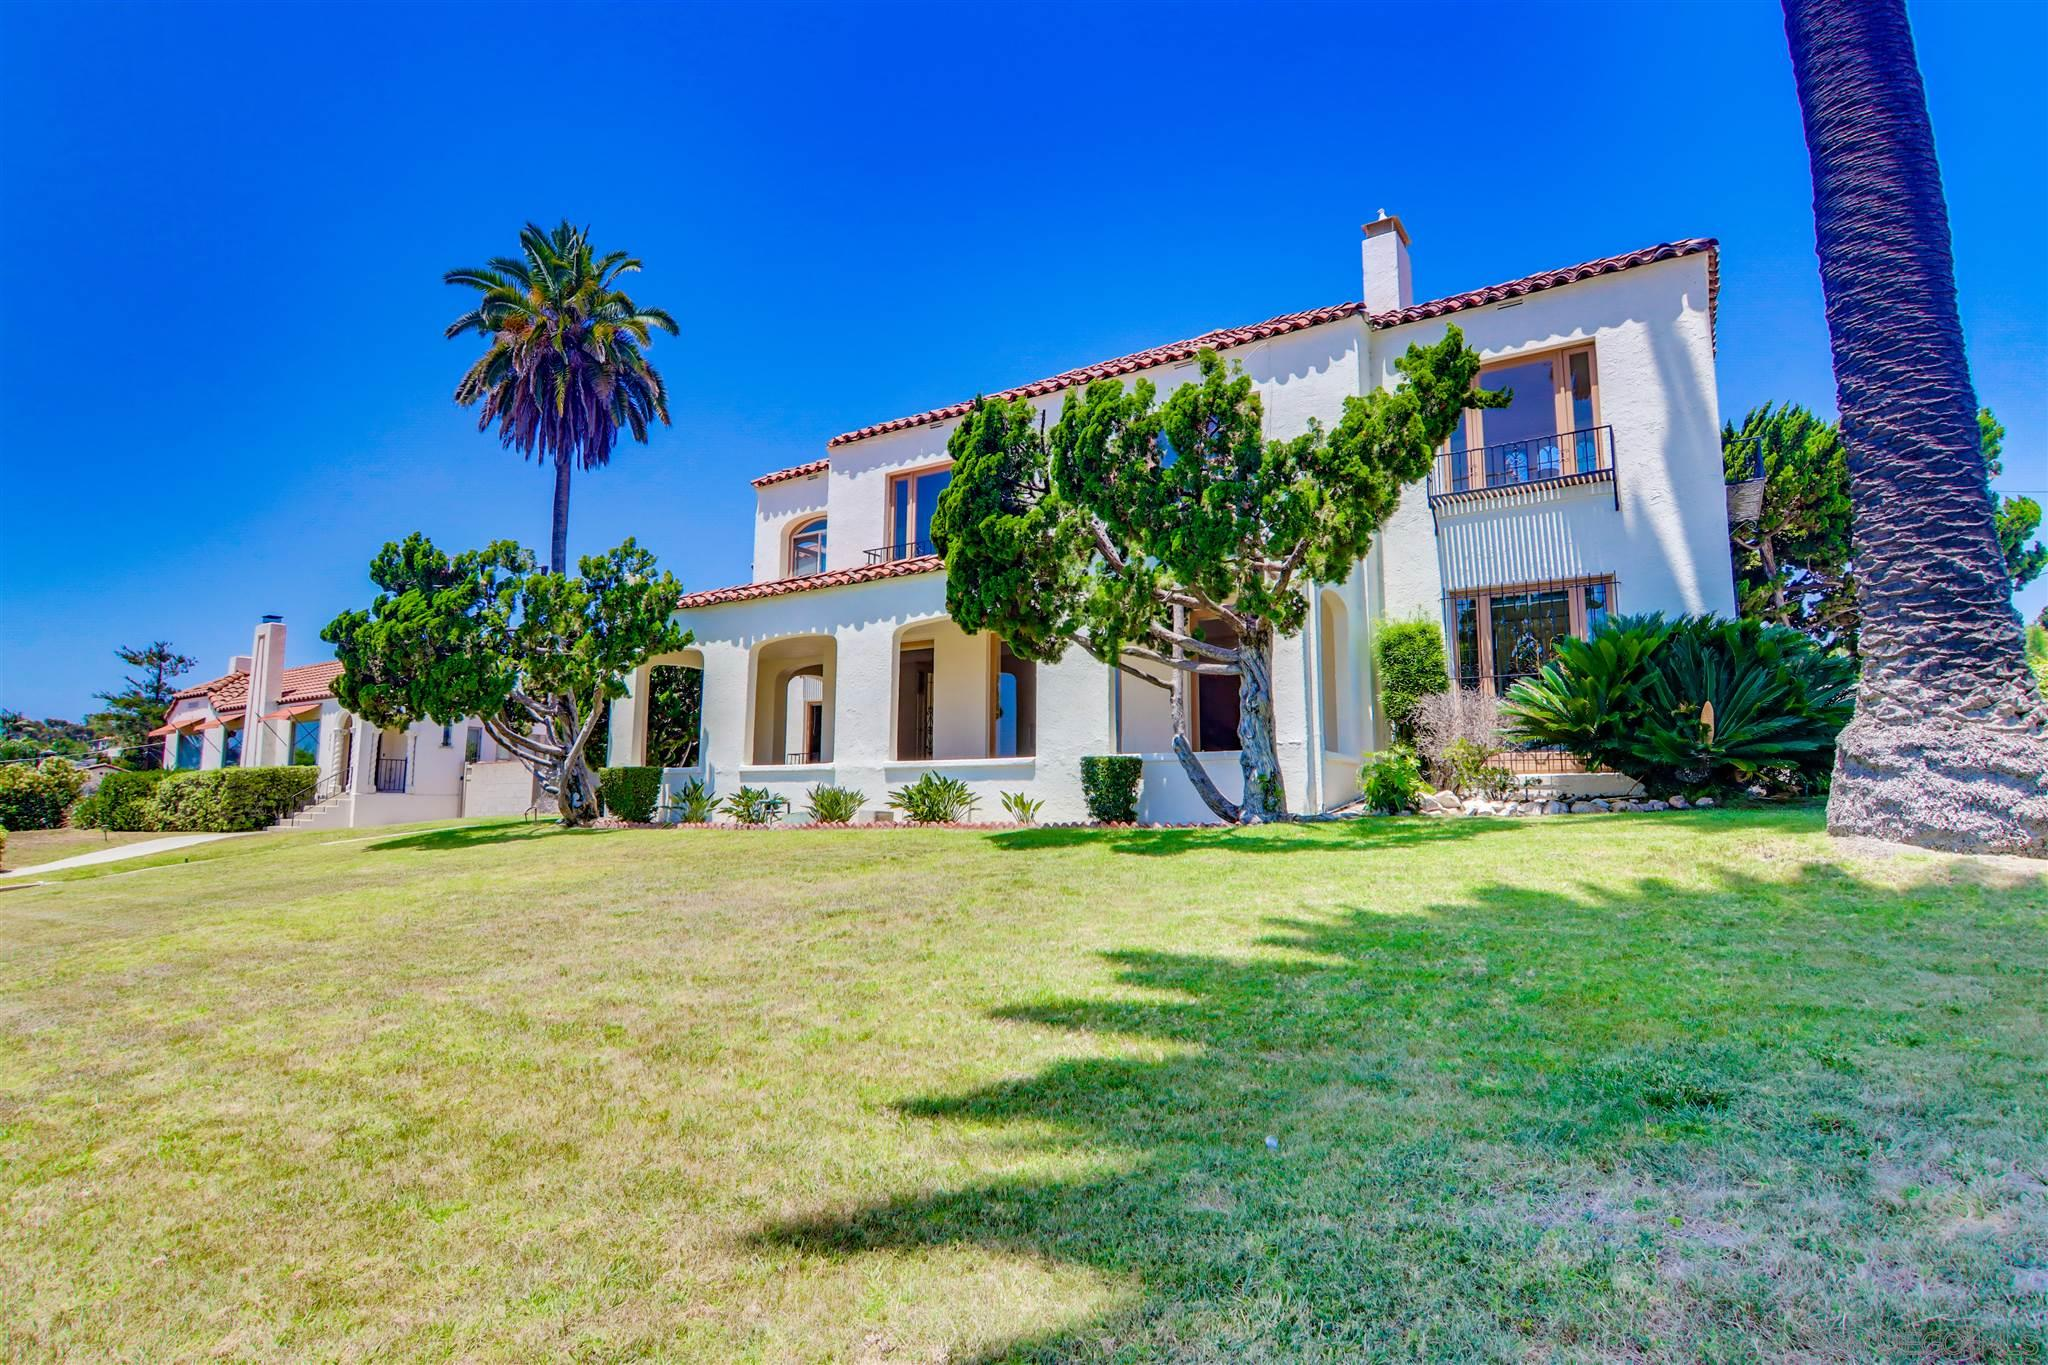 Once in a lifetime very rare opportunity! Built in 1925, this home has been owned by the same family for 75+ years. Stunning original features have been maintained throughout time. This quintessential 7,000 s/f 5BR 6BA home has classic arch. and panoramic views of the SD bay and downtown. Positioned above Rosecrans, the estate like grounds have incredible potential for indoor/outdoor living/entertaining, and the ability to hold exquisite events. Also, Great candidate for Mills Act, & next in line for QHP.This property is next in line for the Quieter Home Program (The Airport Authority in conjunction with the port replace windows, doors where applicable, add furnaces, air conditioning units and at times upgrade electrical at no cost to the Owner. If any questions, Please ask Listing Agent.